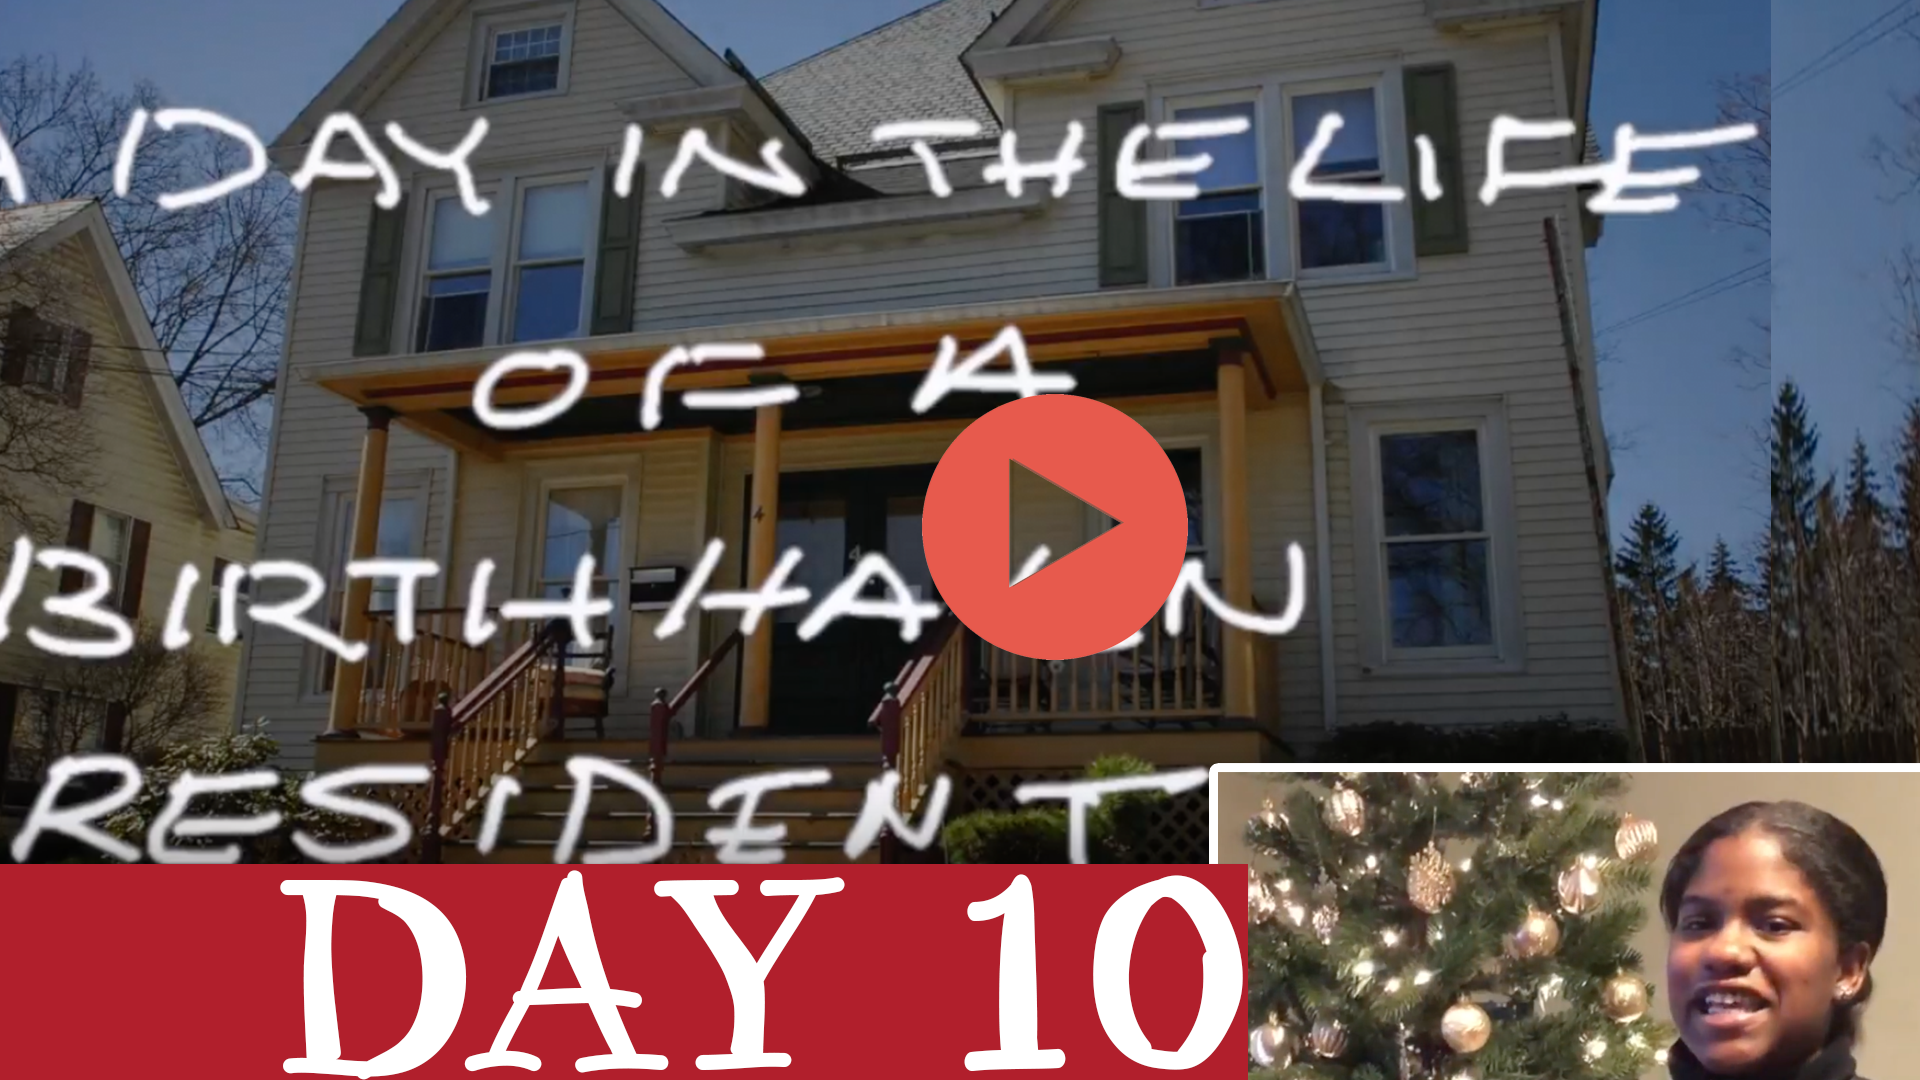 Day 10 of our 12 Days of Hope Drive